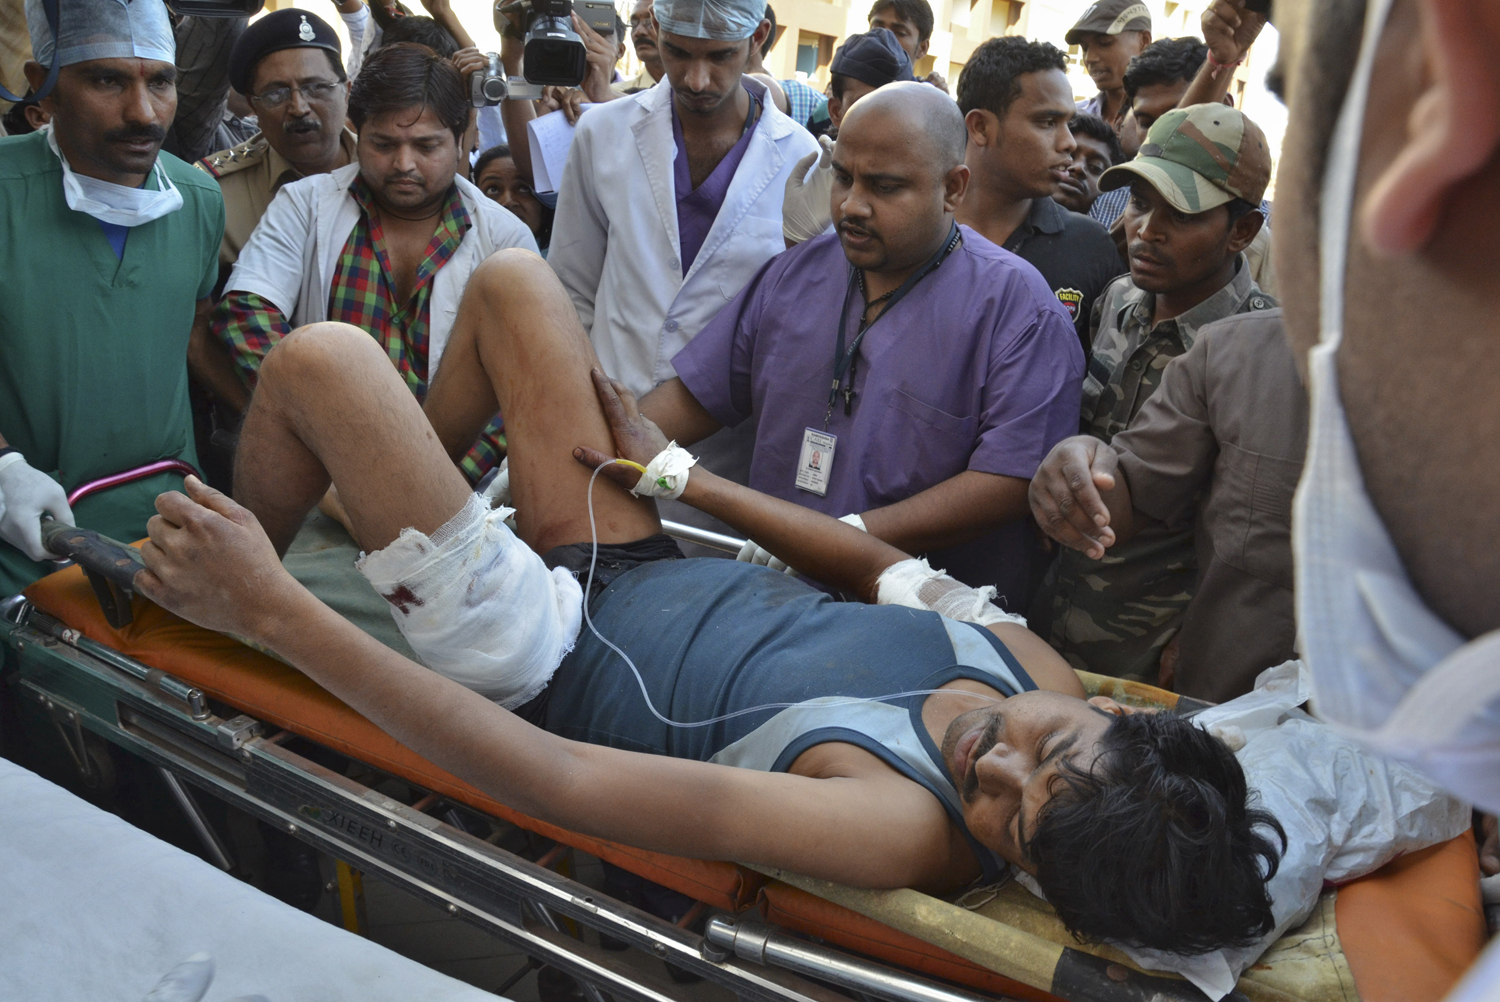 An injured Indian Central Reserve Police Force (CRPF) personnel is taken to a hospital at Raipur in the eastern Indian state of Chhattisgarh March 11, 2014.